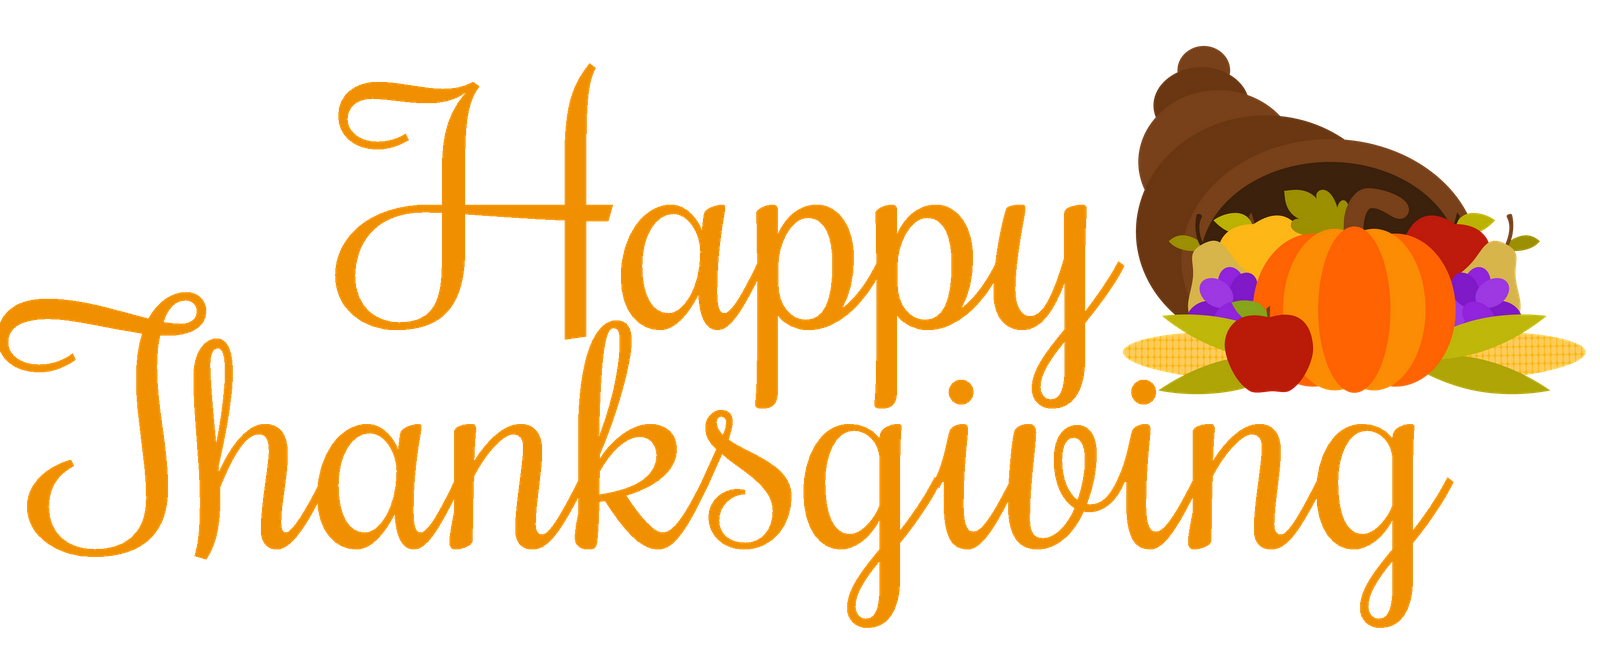 thanksgiving day greetings images